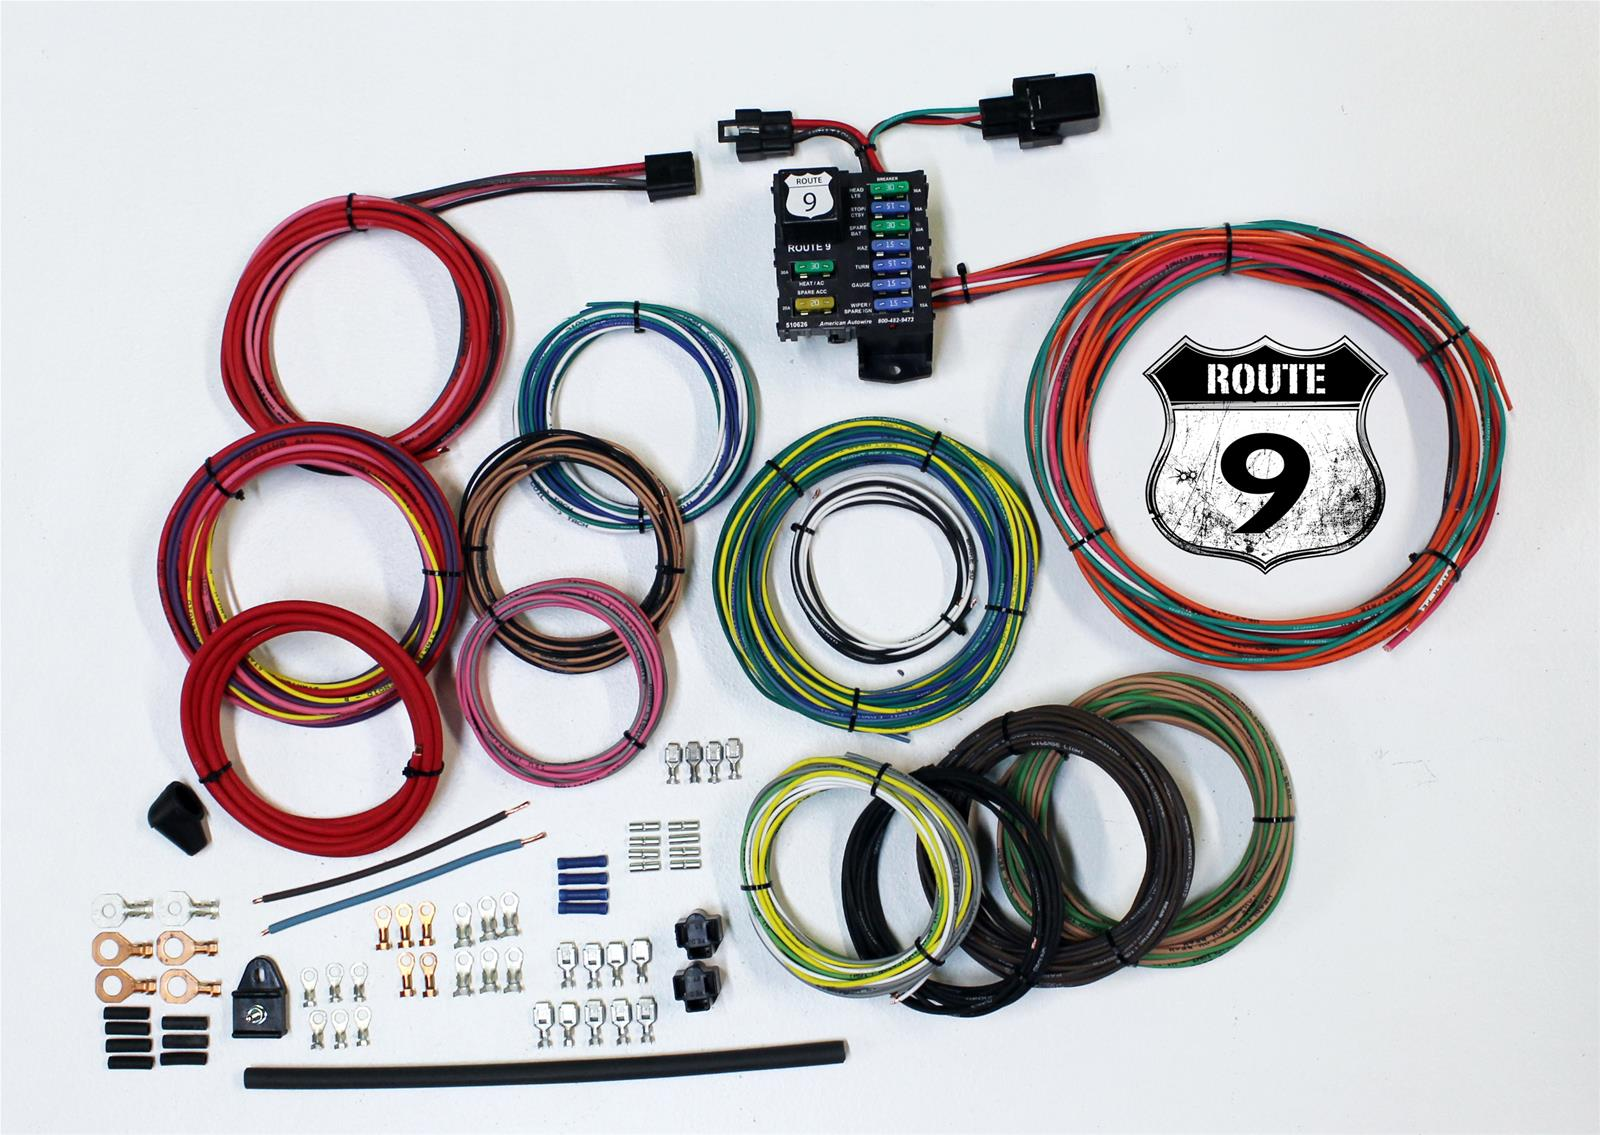 Teca Wiring Harness Tape Vw Library Uk American Autowire Route 9 Universal Systems 510625 Free Shipping On Orders Over 99 At